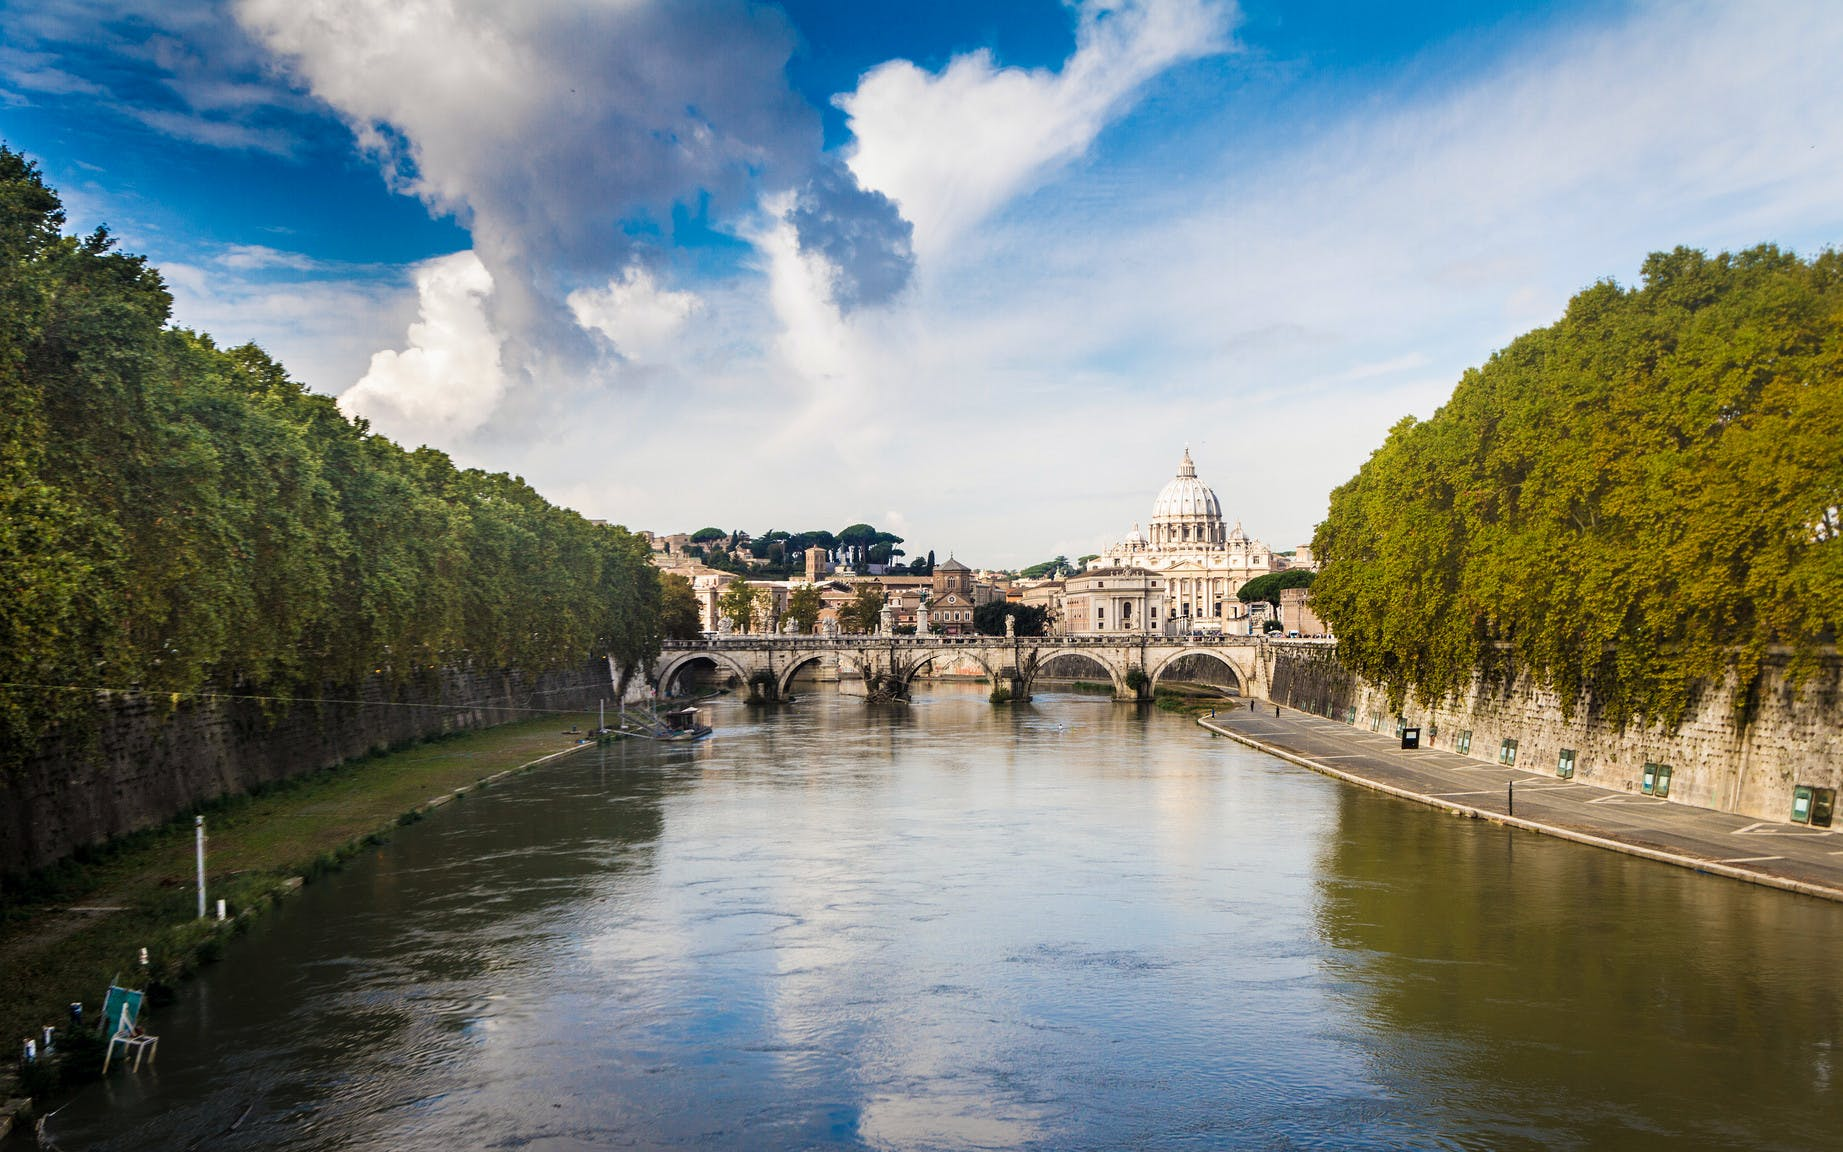 Vatican Musuem & St. Peter's Basilica Elite Tour - Skip the Line (Afternoon)